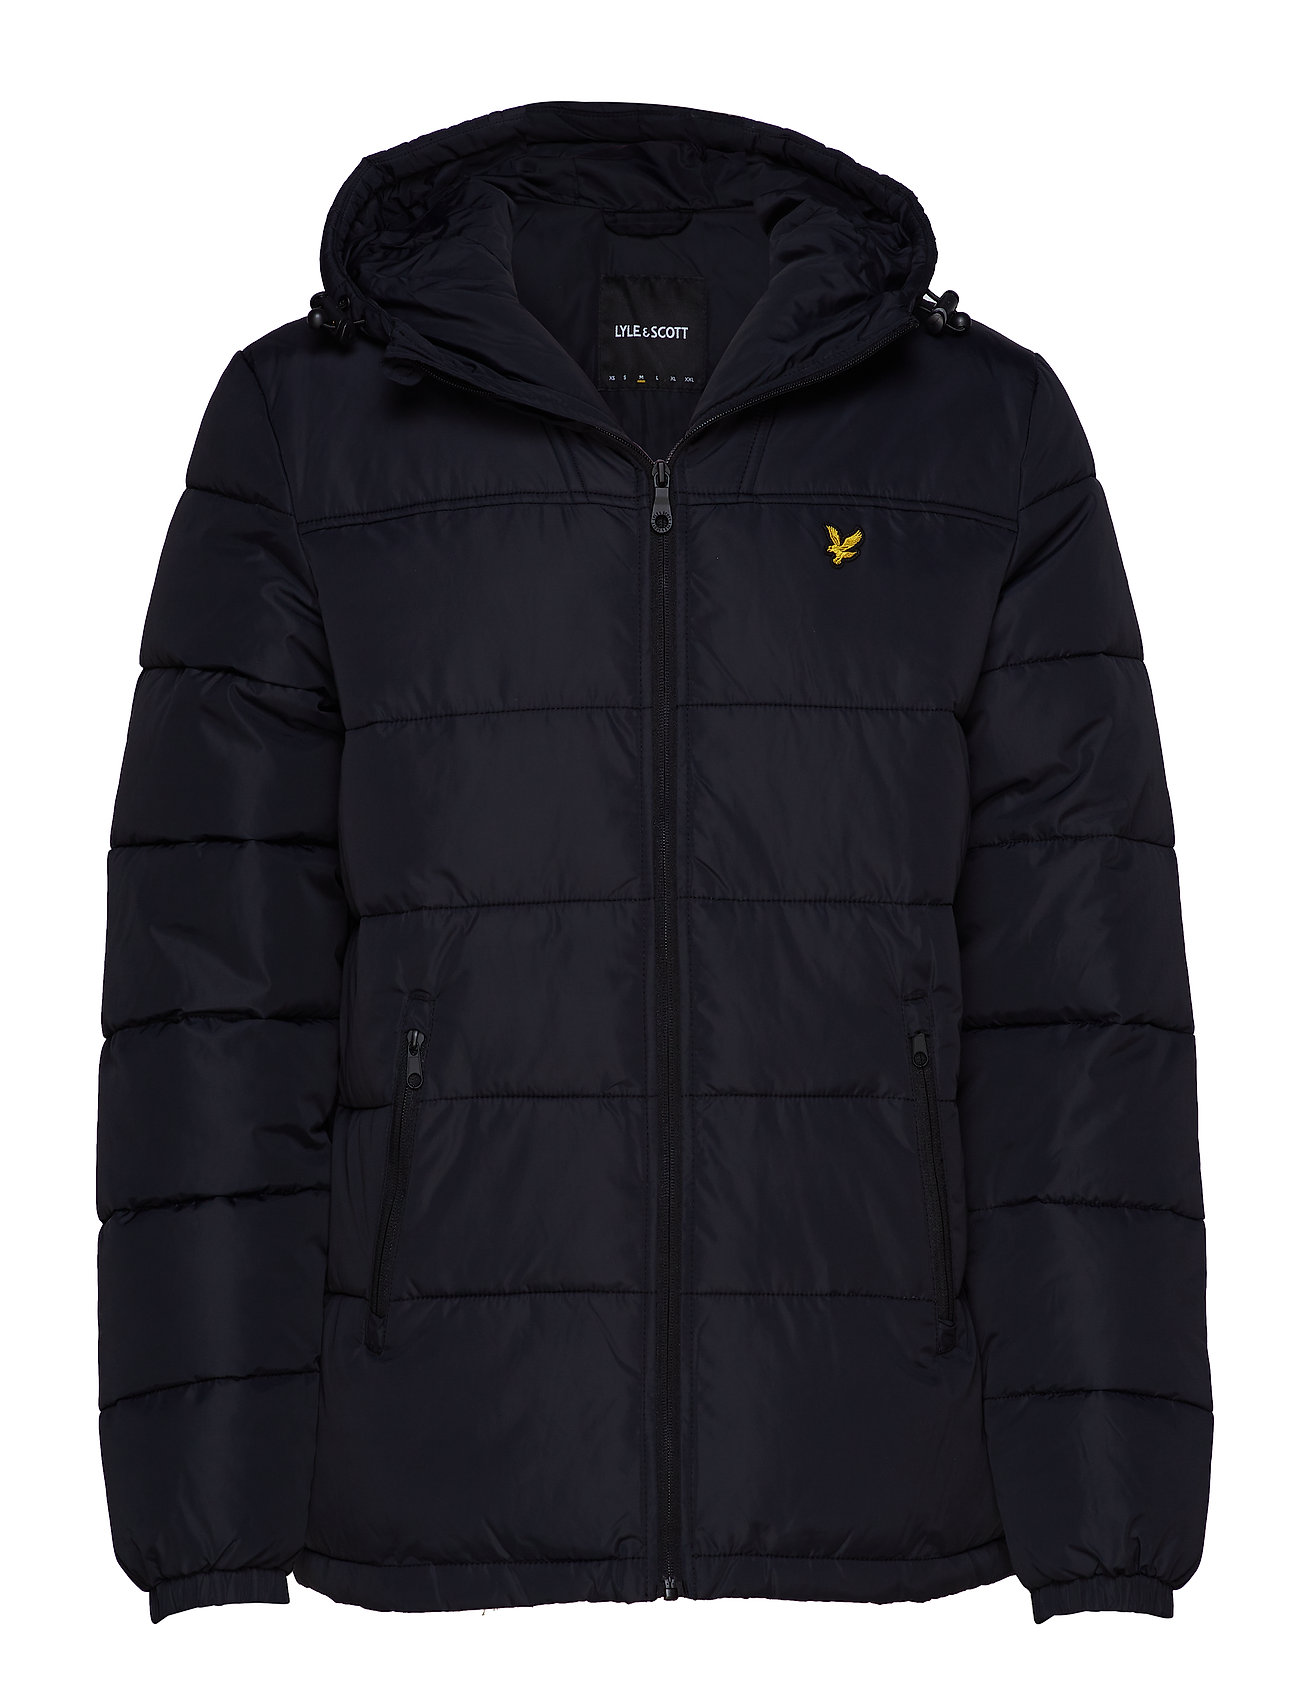 Lyle & Scott Wadded Jacket - TRUE BLACK